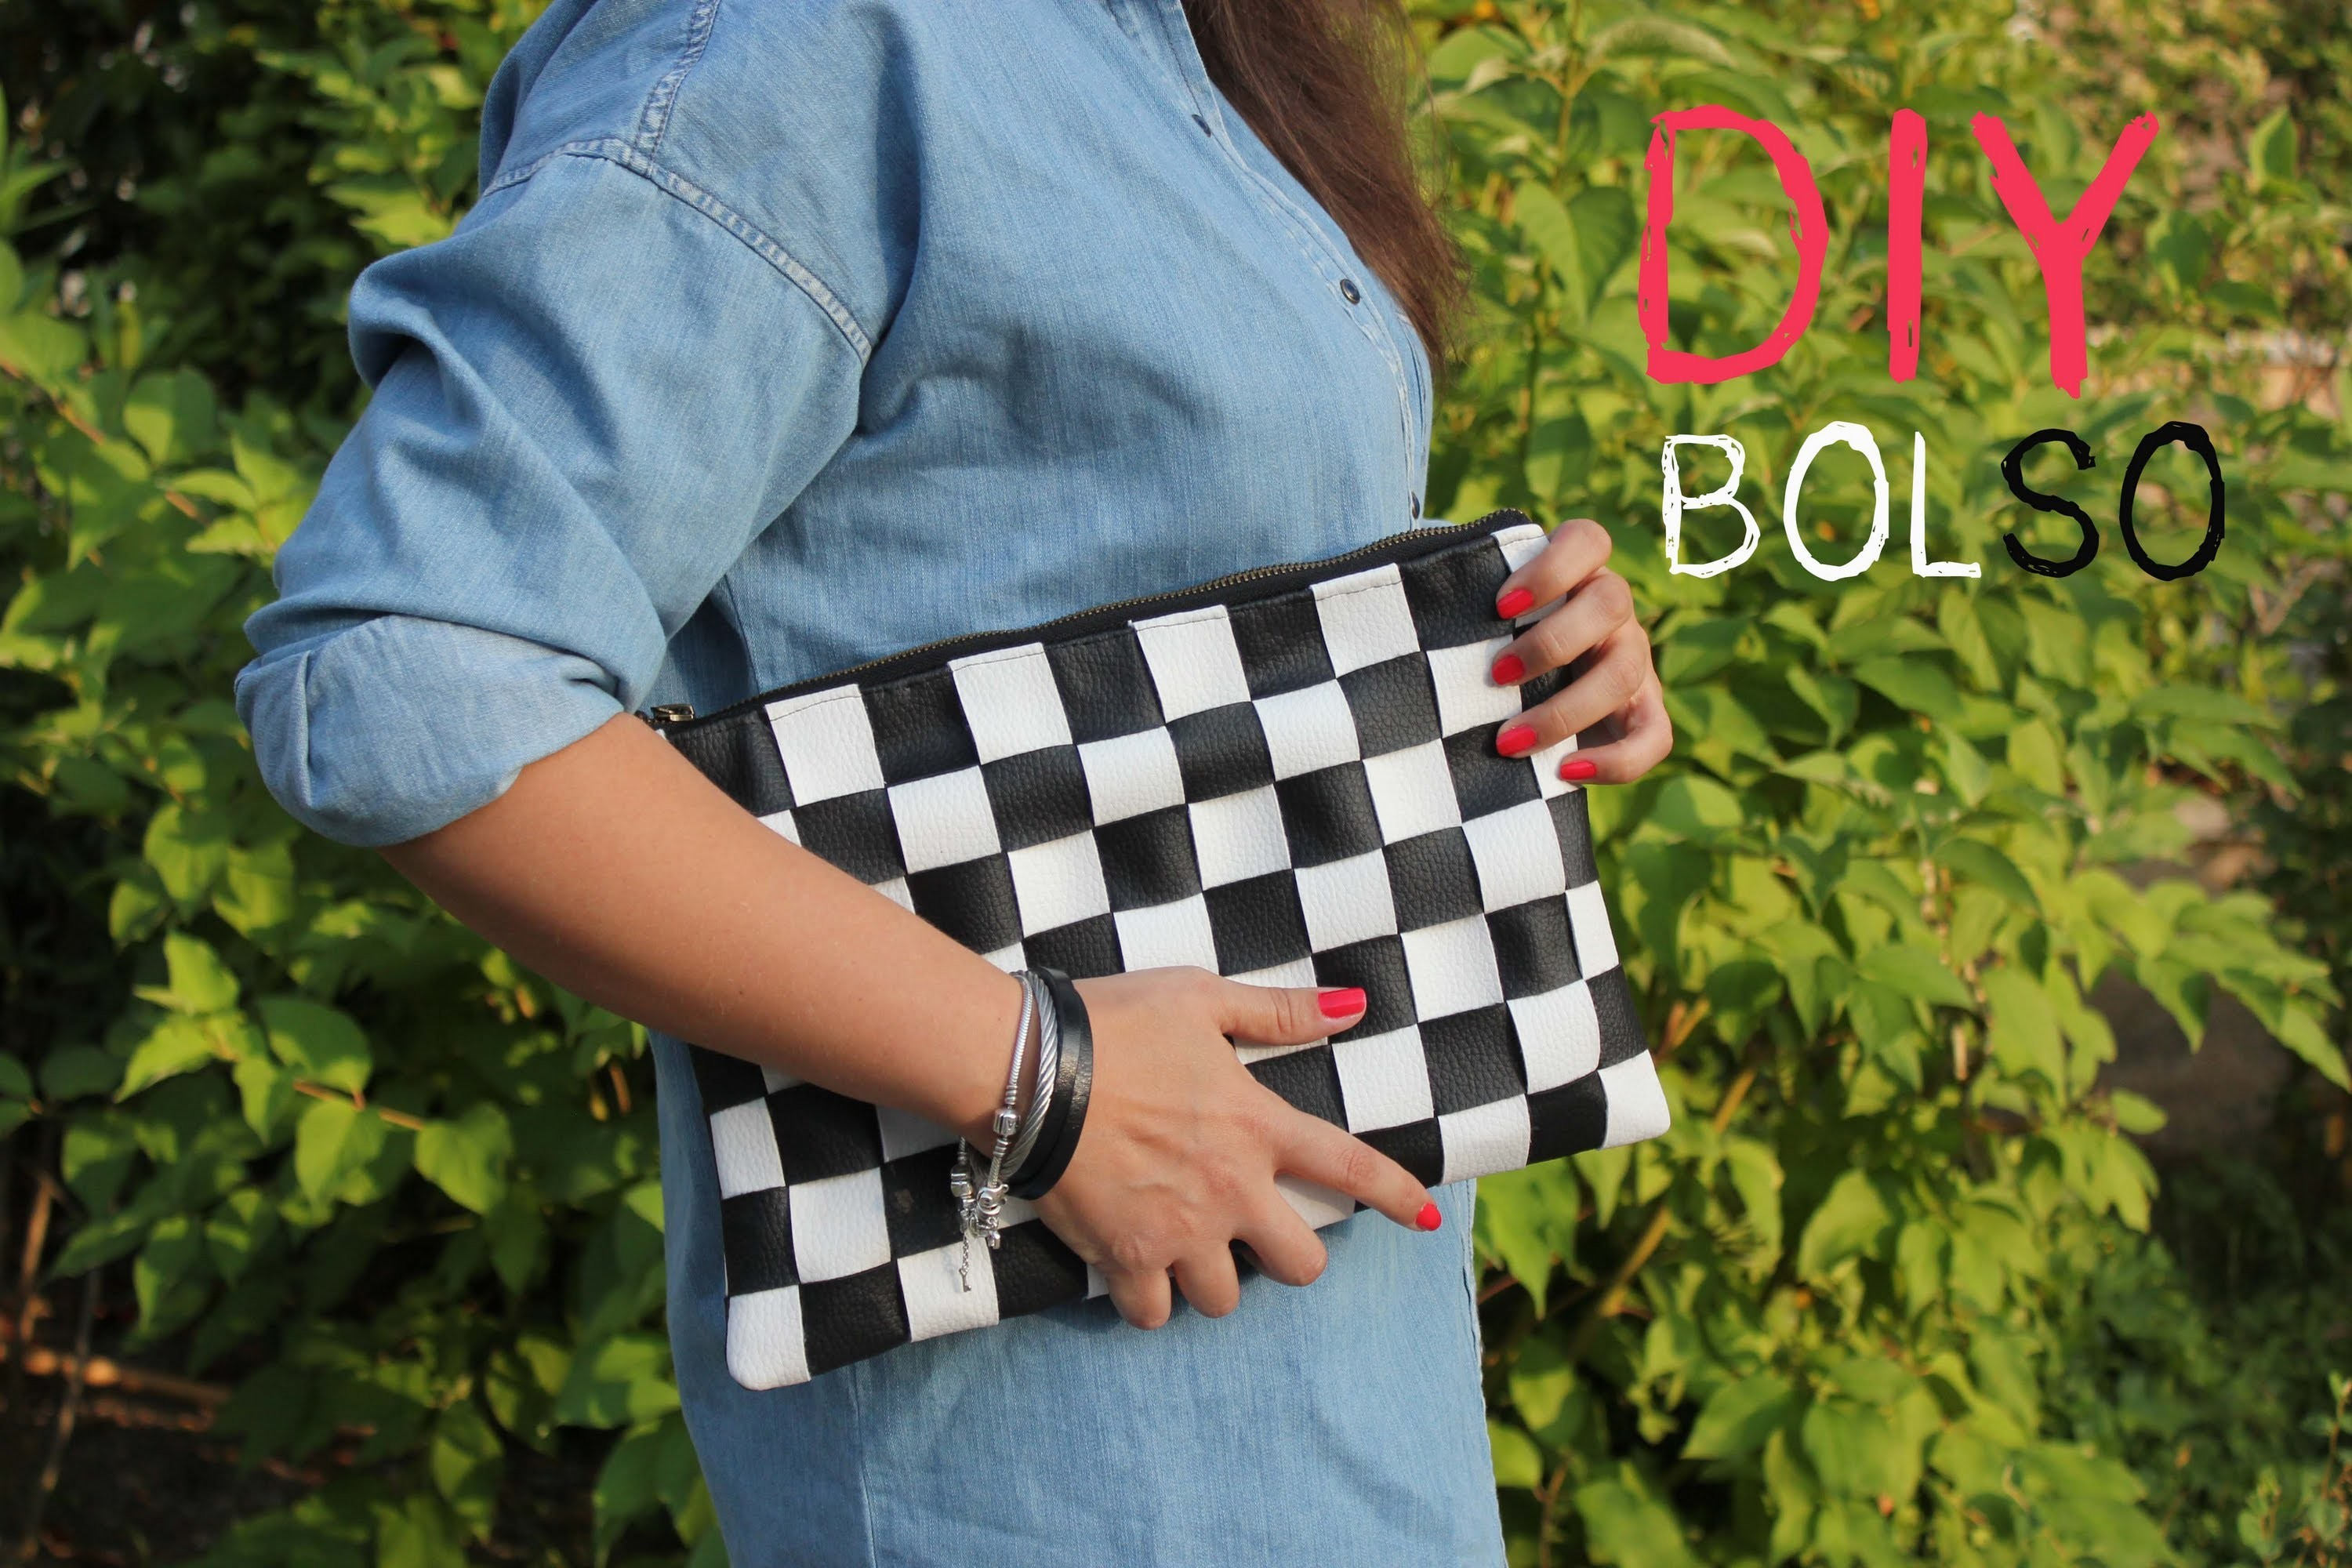 DIY Bolso de cuero damero. DIY black and white leather bag